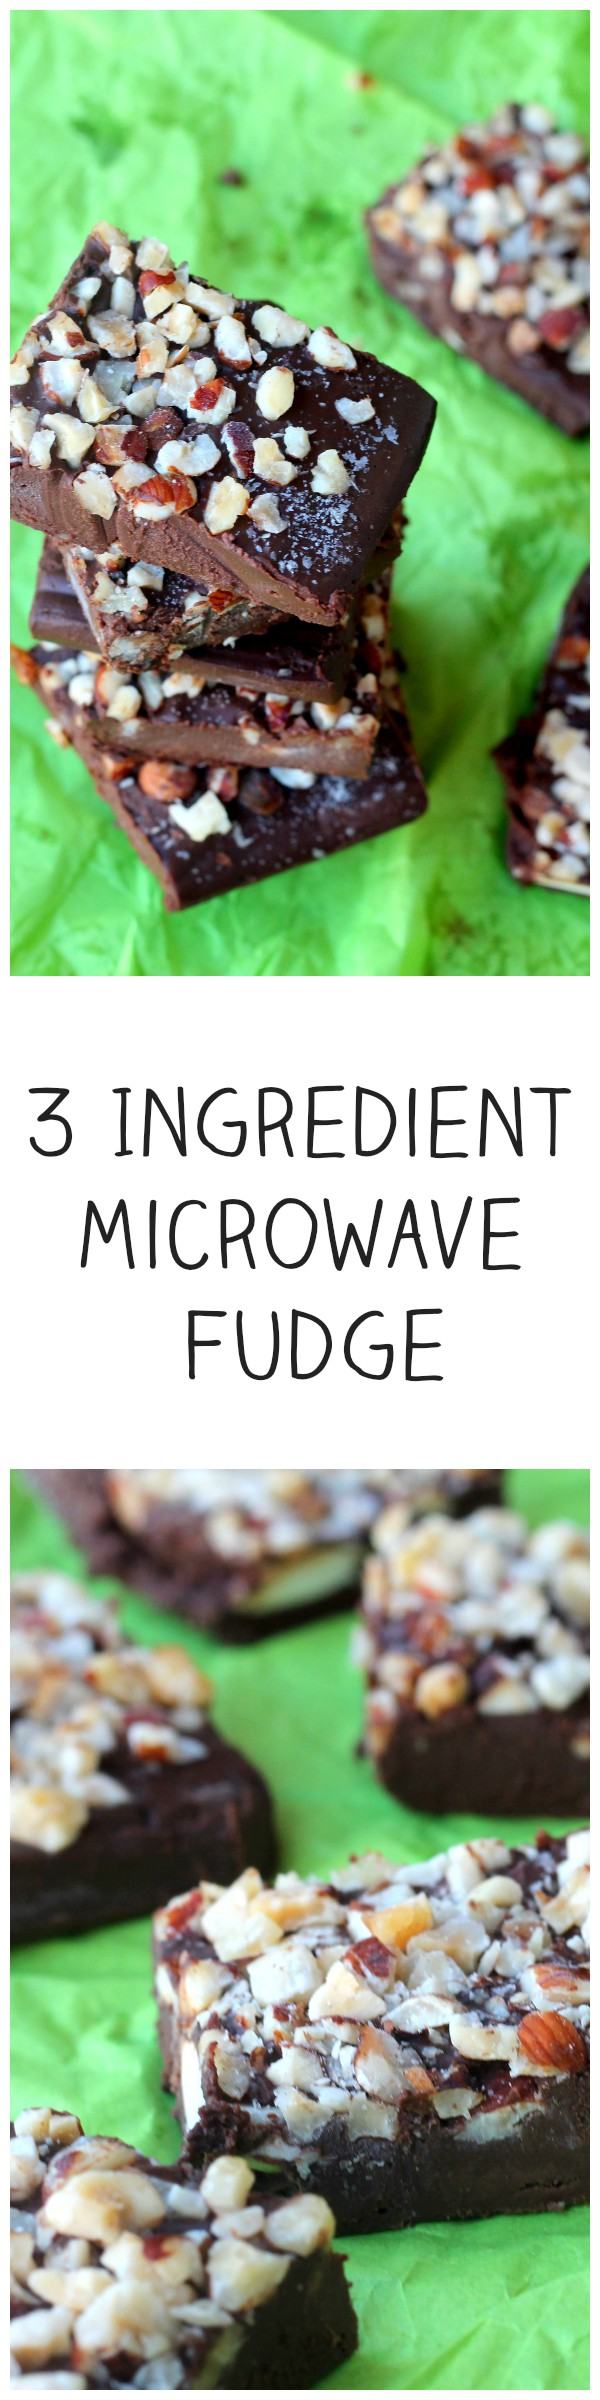 3 Ingredient Microwave Fudge